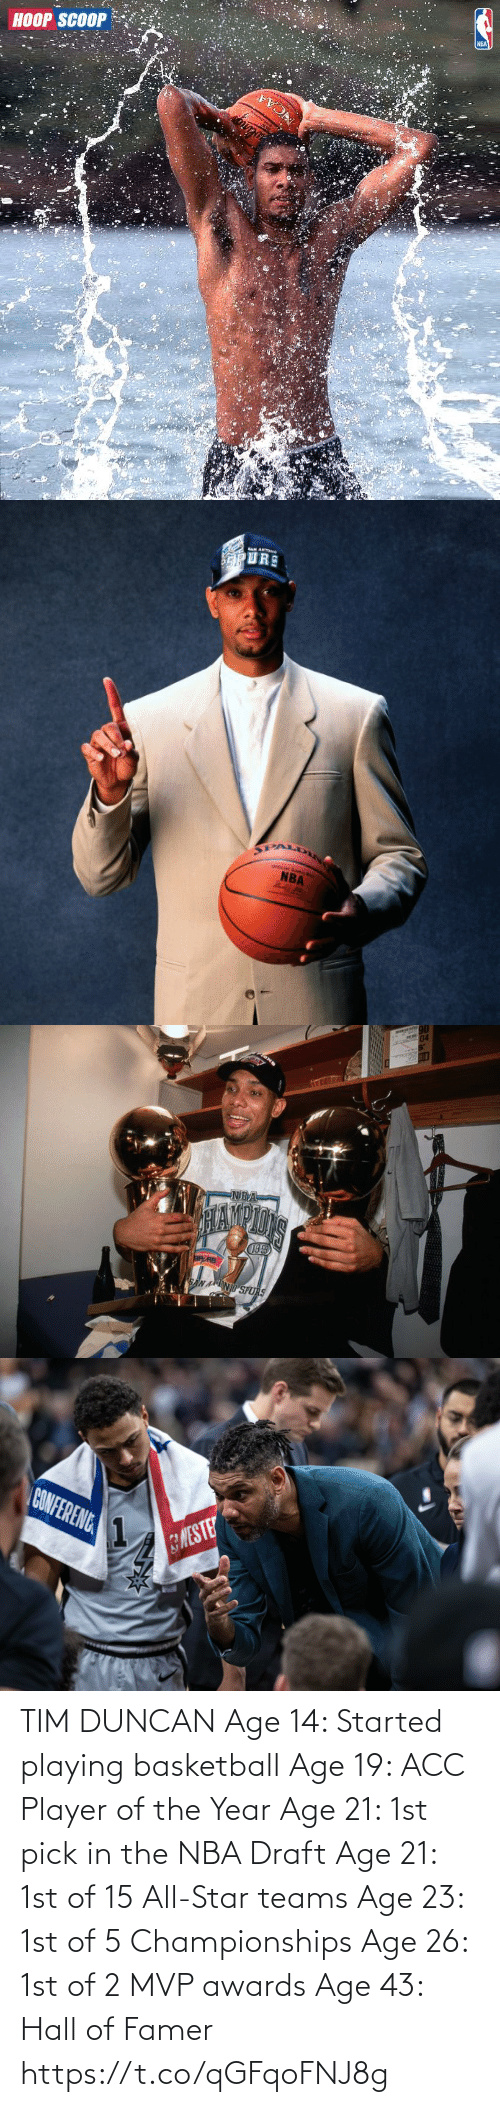 2: TIM DUNCAN  Age 14: Started playing basketball Age 19: ACC Player of the Year Age 21: 1st pick in the NBA Draft Age 21: 1st of 15 All-Star teams Age 23: 1st of 5 Championships Age 26: 1st of 2 MVP awards Age 43: Hall of Famer https://t.co/qGFqoFNJ8g